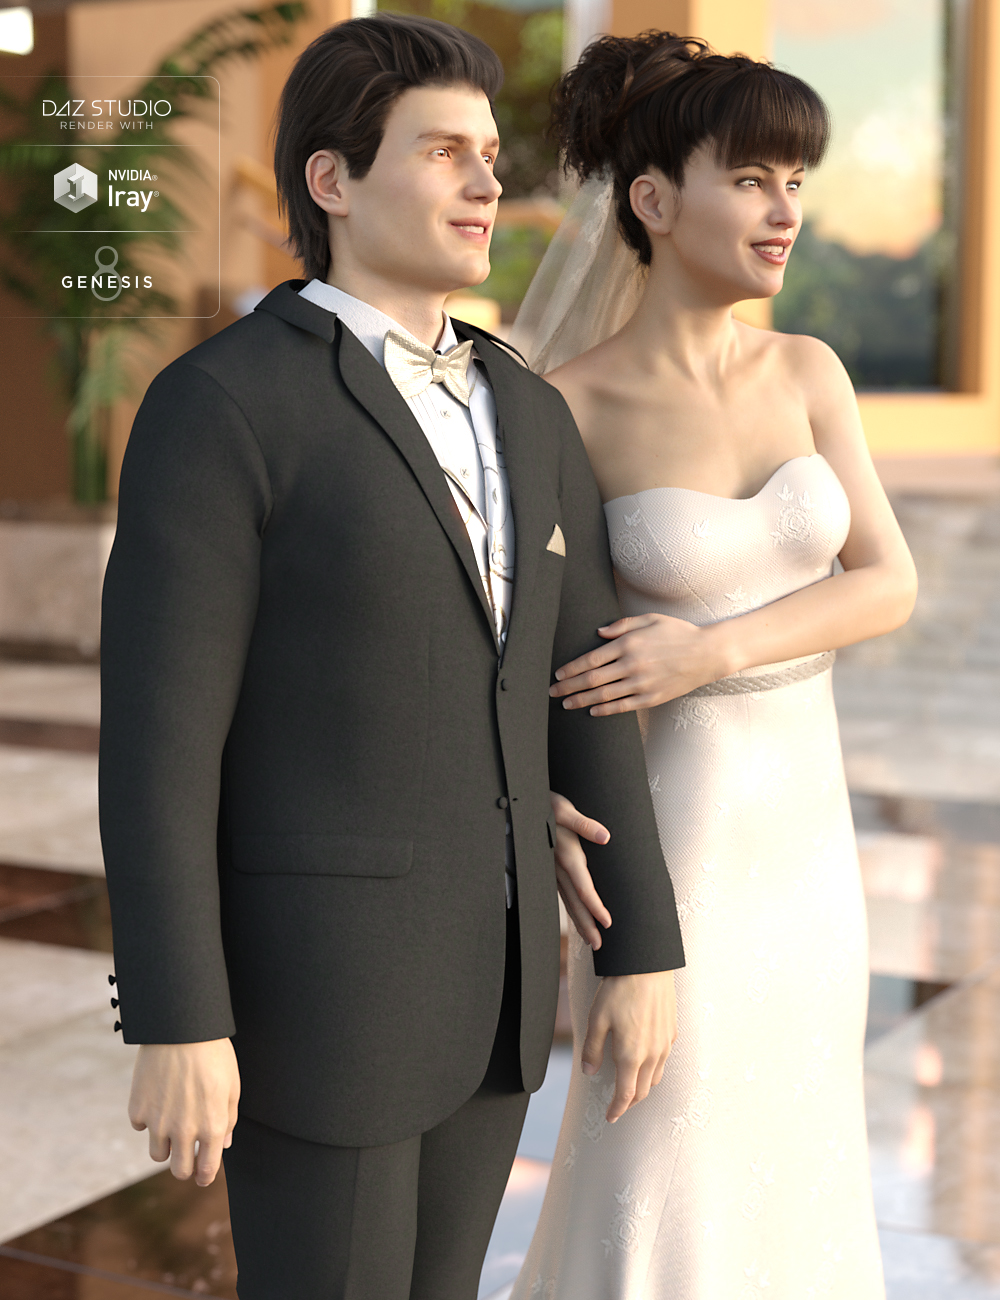 Wedding Photo Shoot Poses for Genesis 8 Male(s) and Female(s) by: Devon, 3D Models by Daz 3D